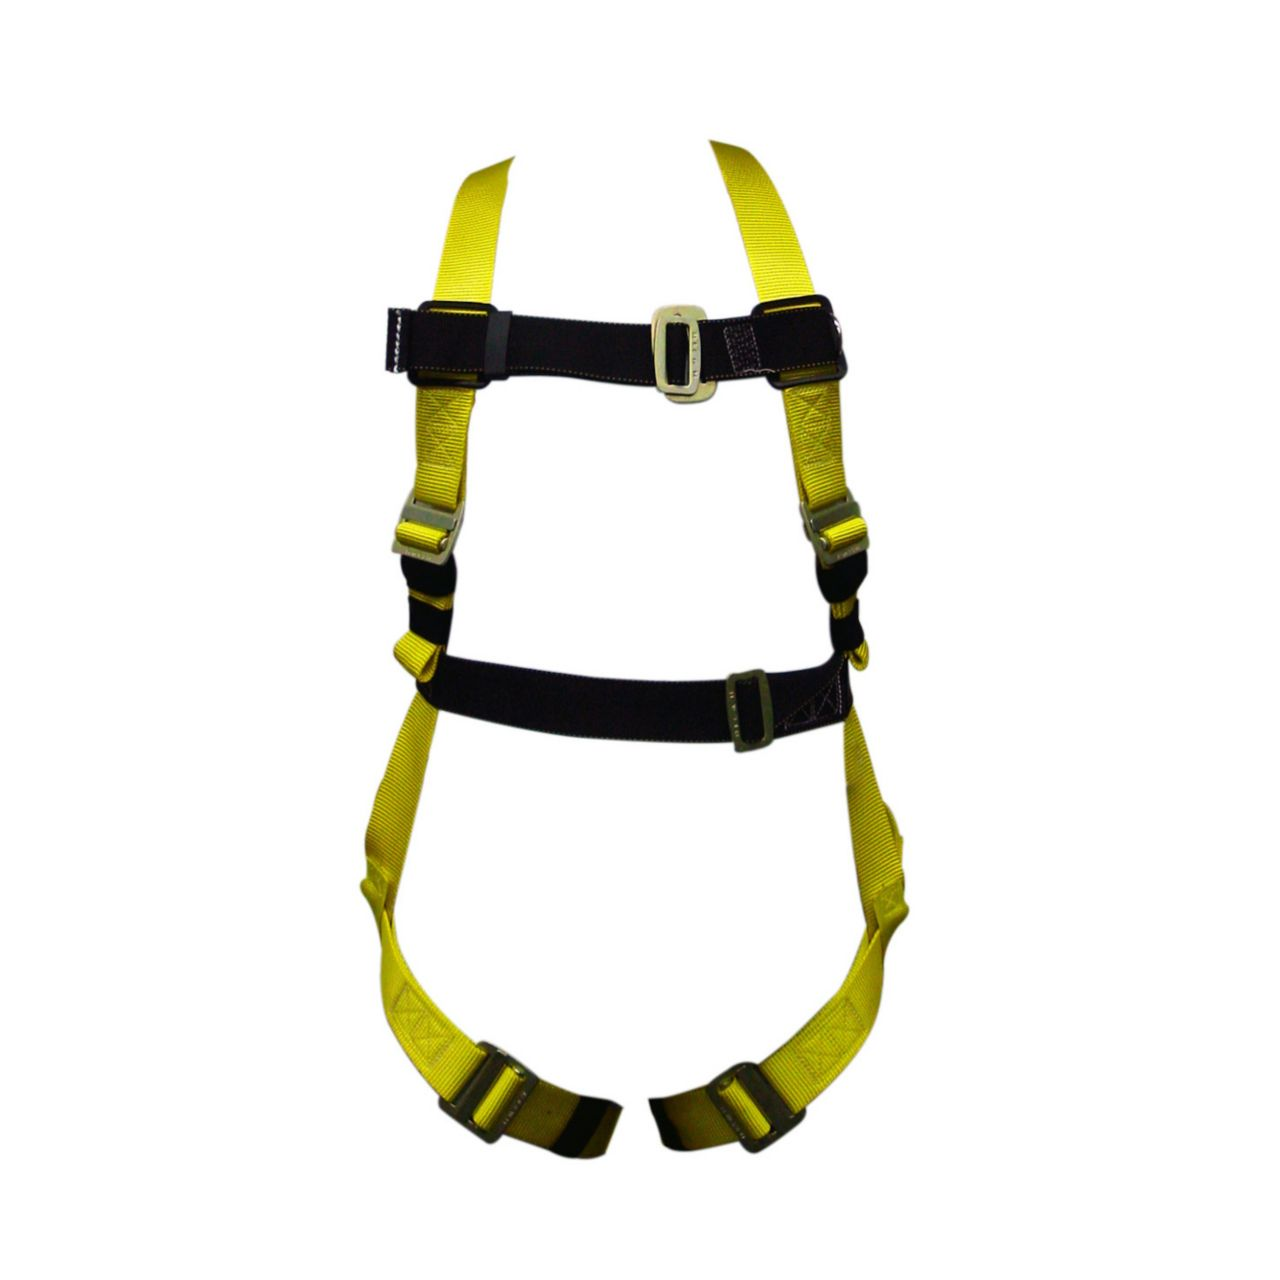 8428-non-strech-harness-outlined